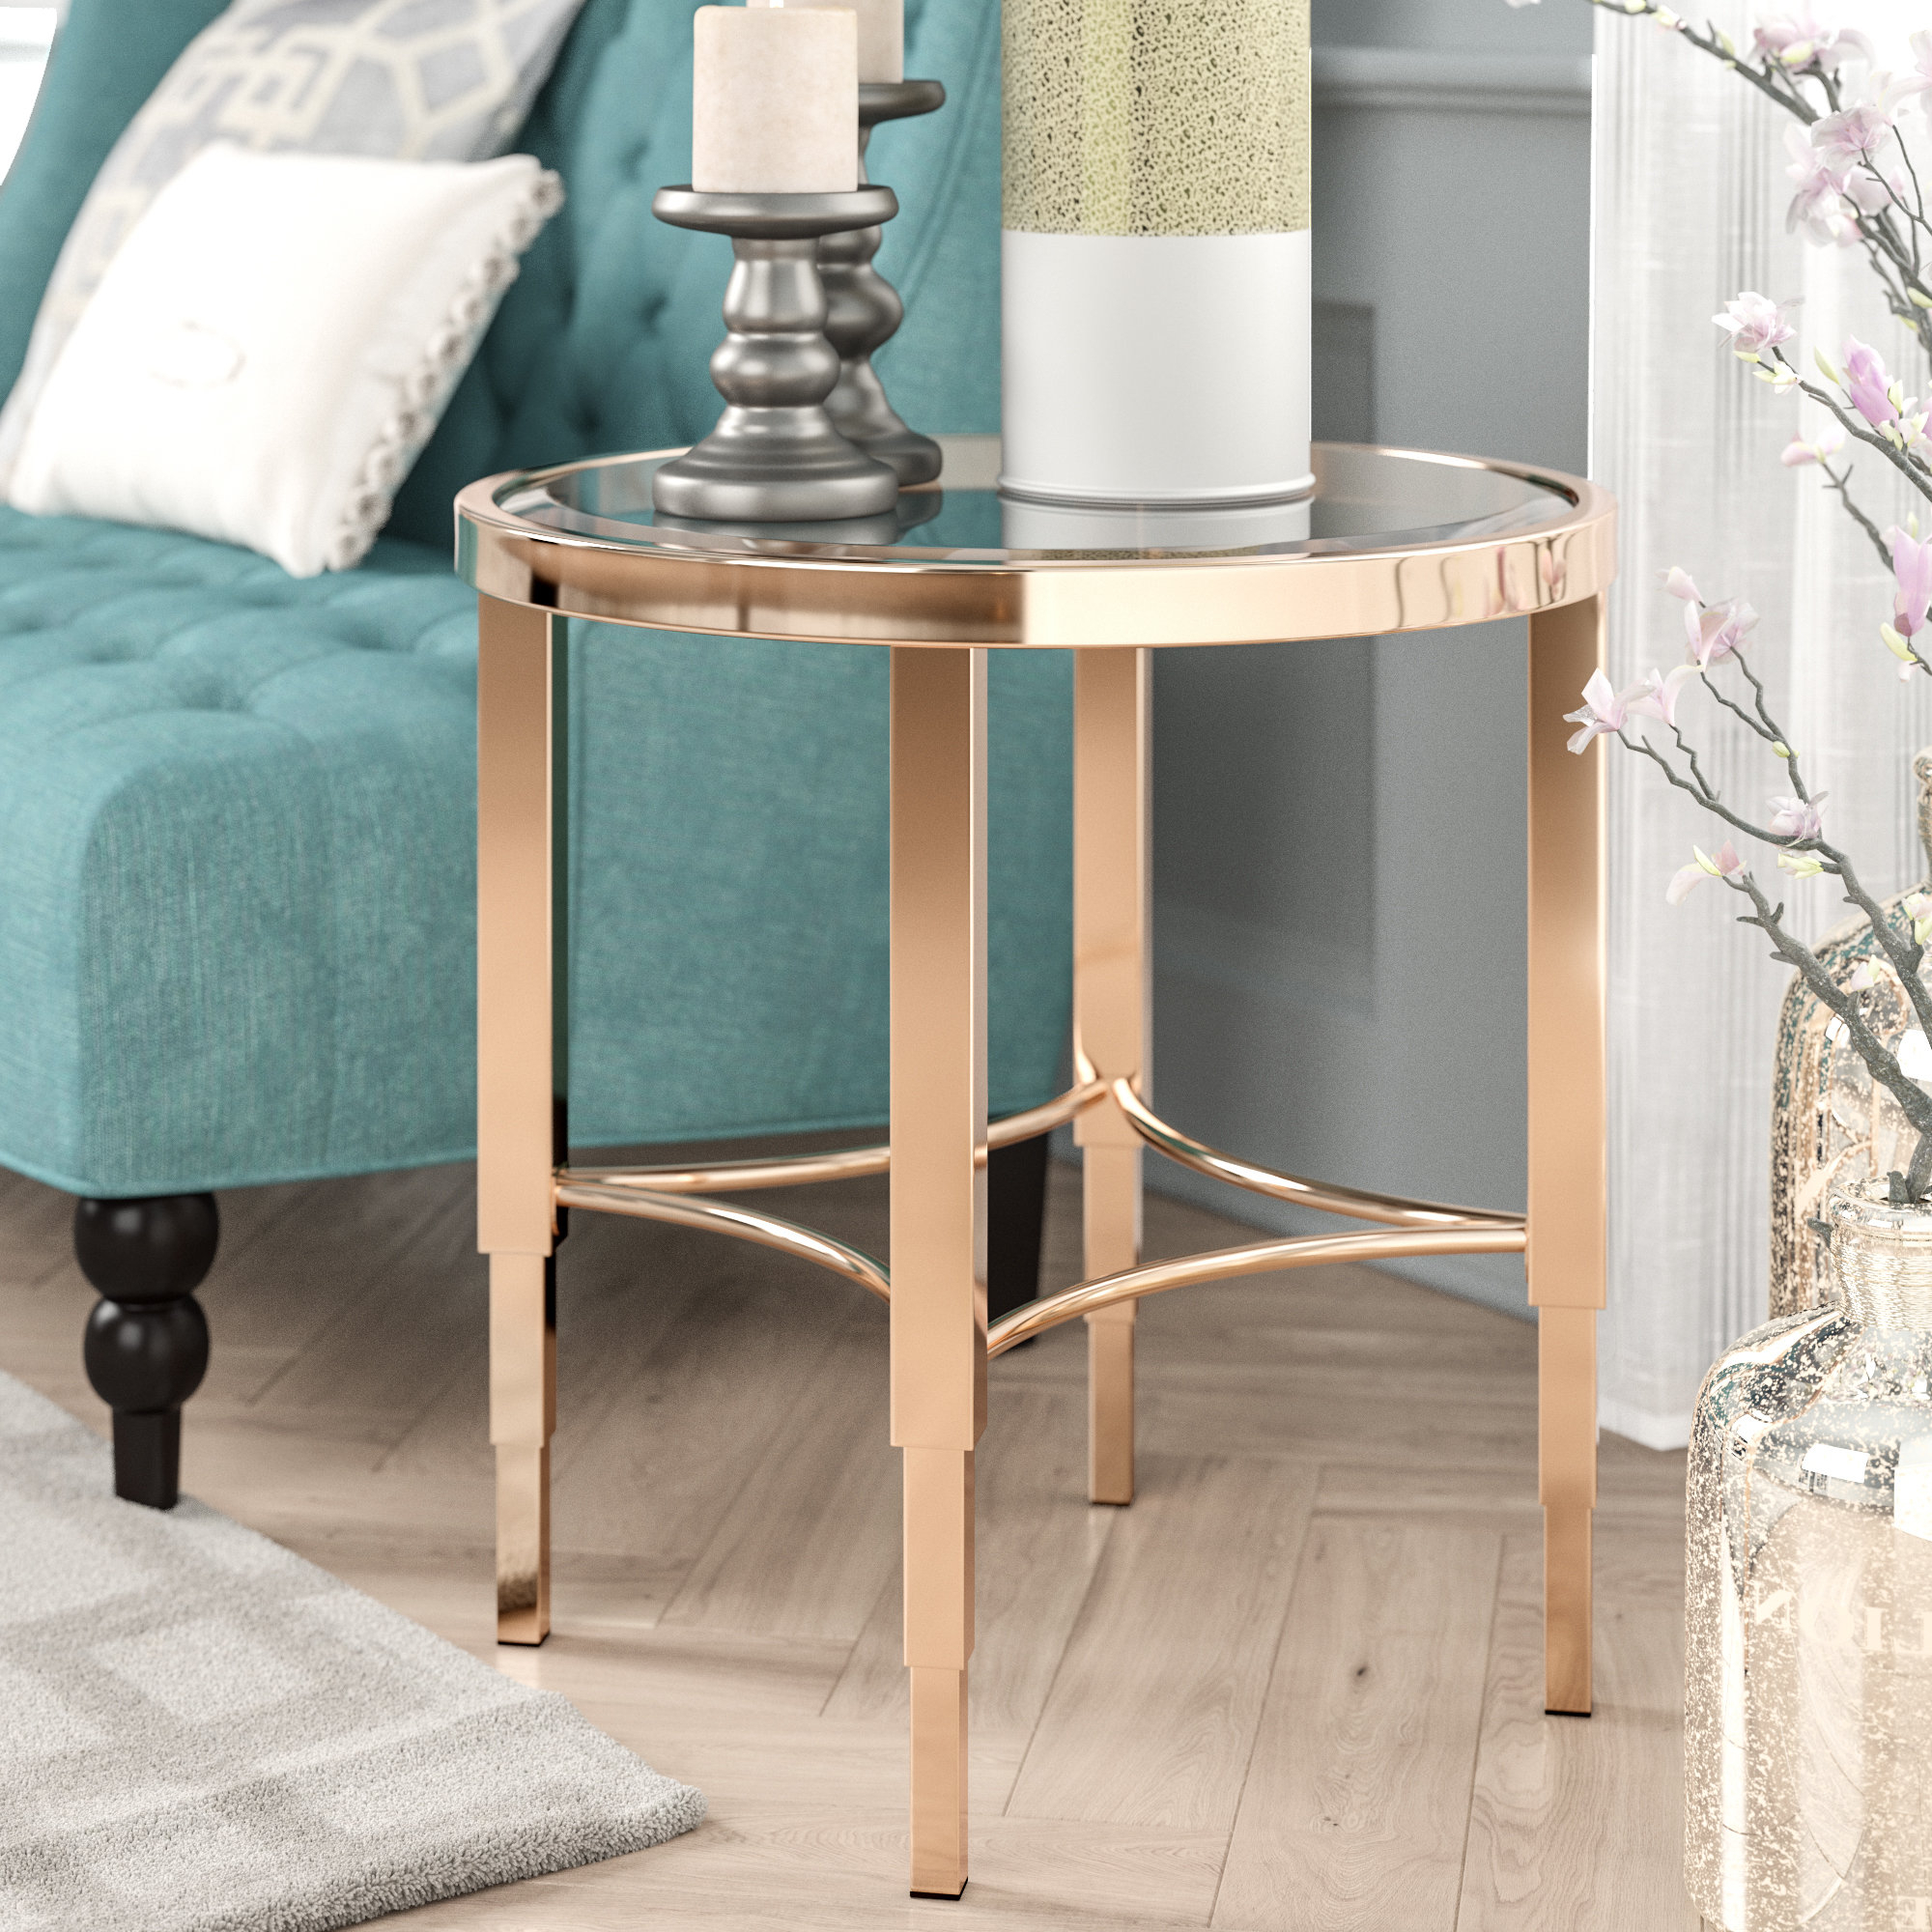 2018 Scattered Geo Console Tables Inside Art Deco Floor Lamp (View 1 of 20)